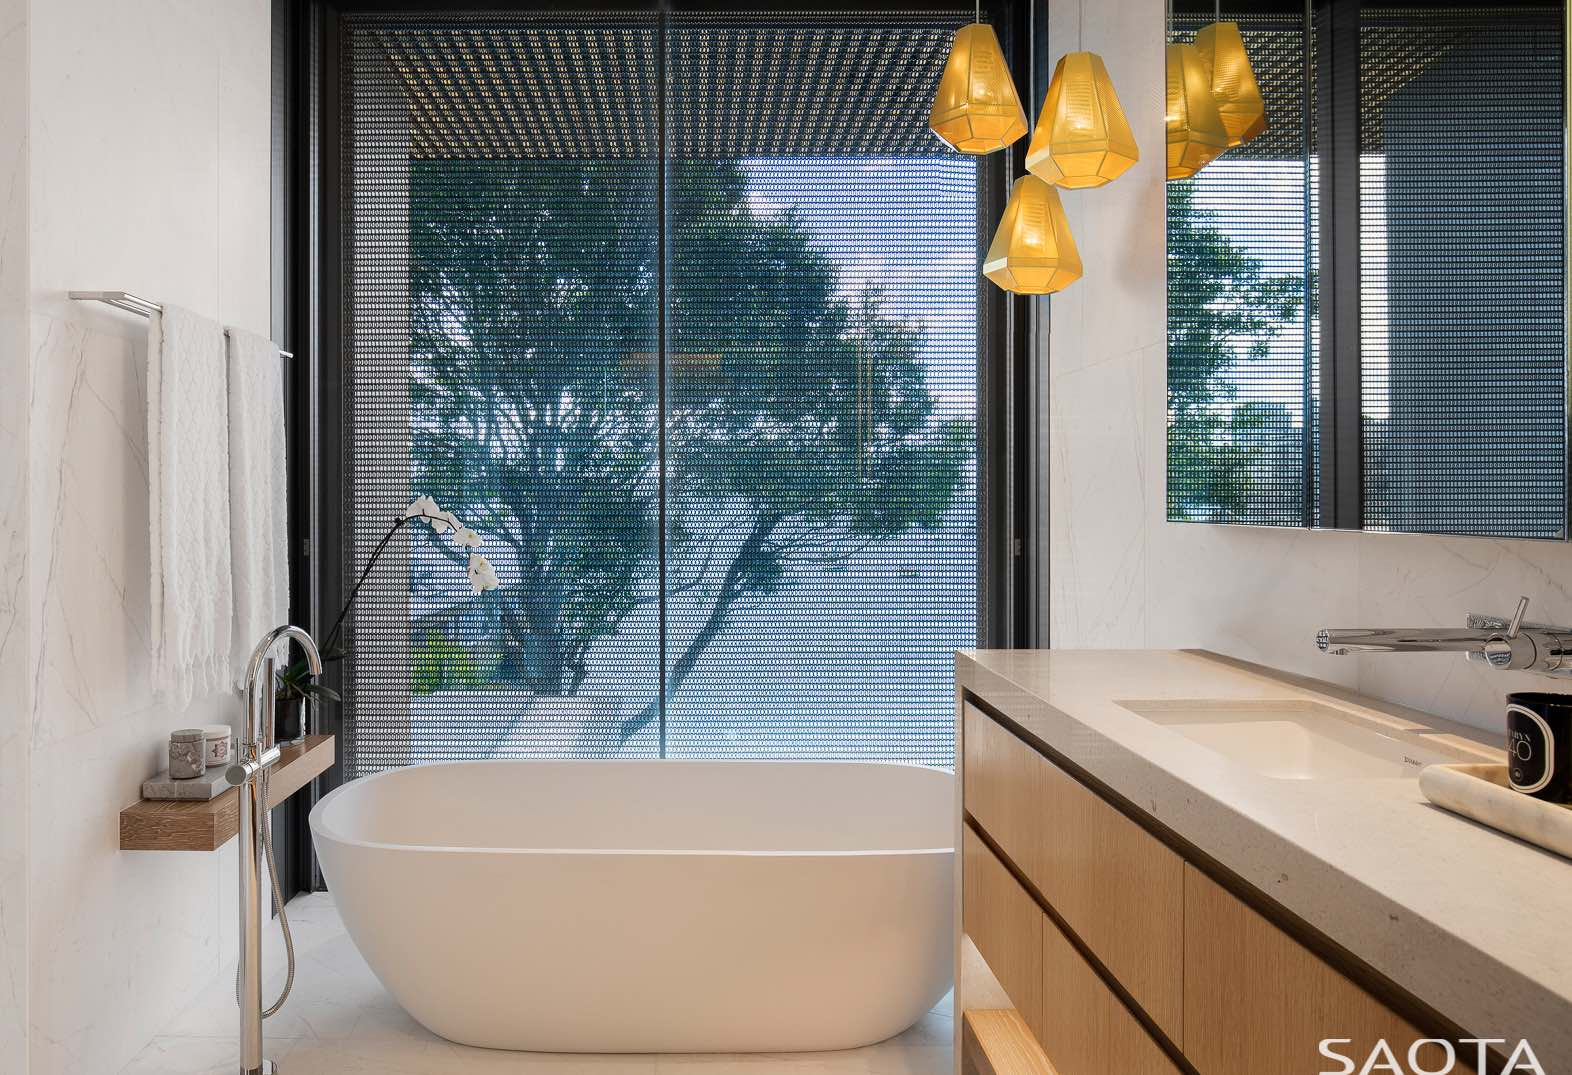 a beautiful van in bathroom illuminated with yellow pendant lamp